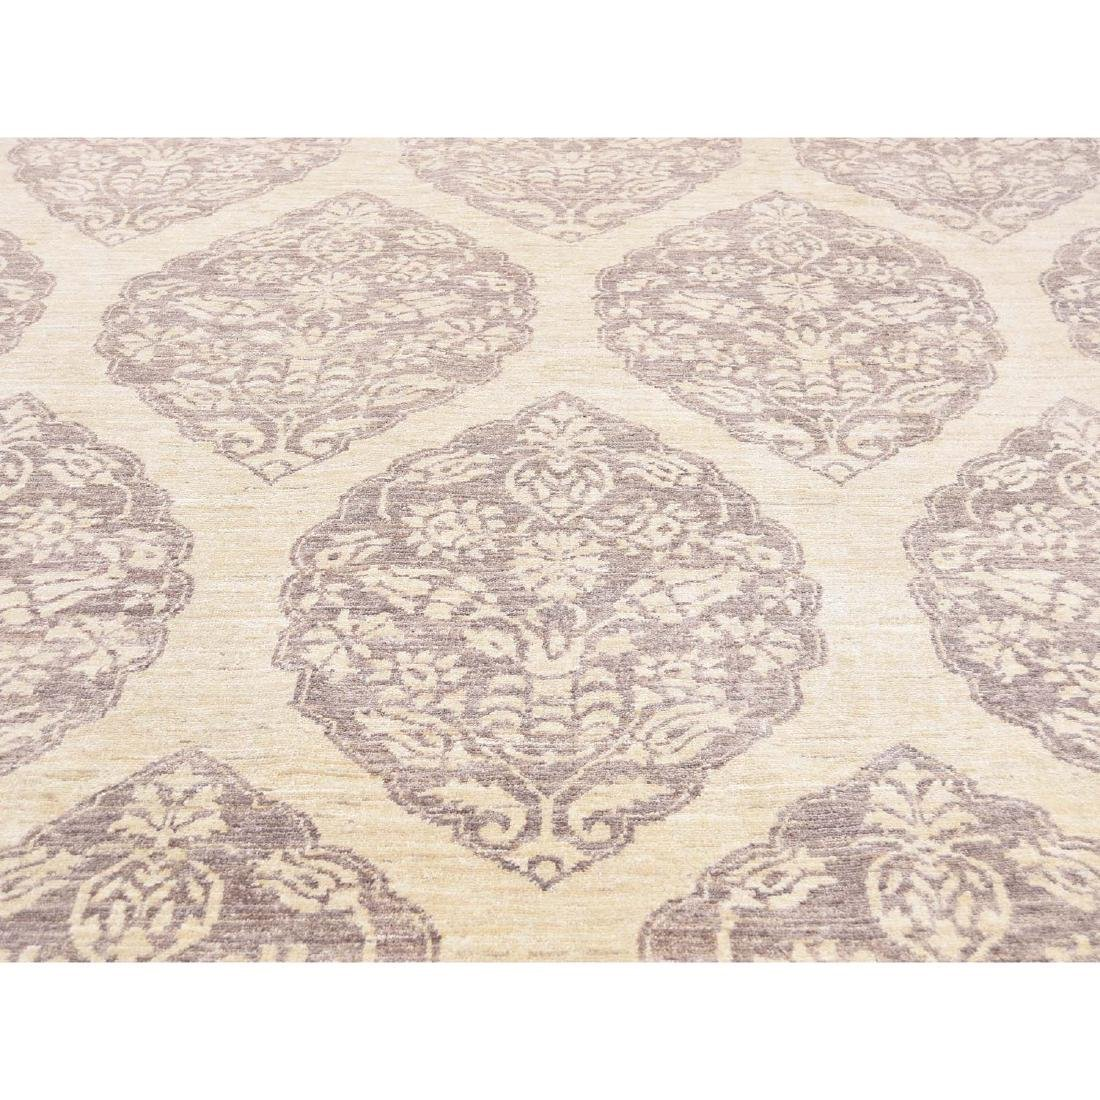 Pure Wool Peshawar with Mughal Design Hand Knotted Rug - 9